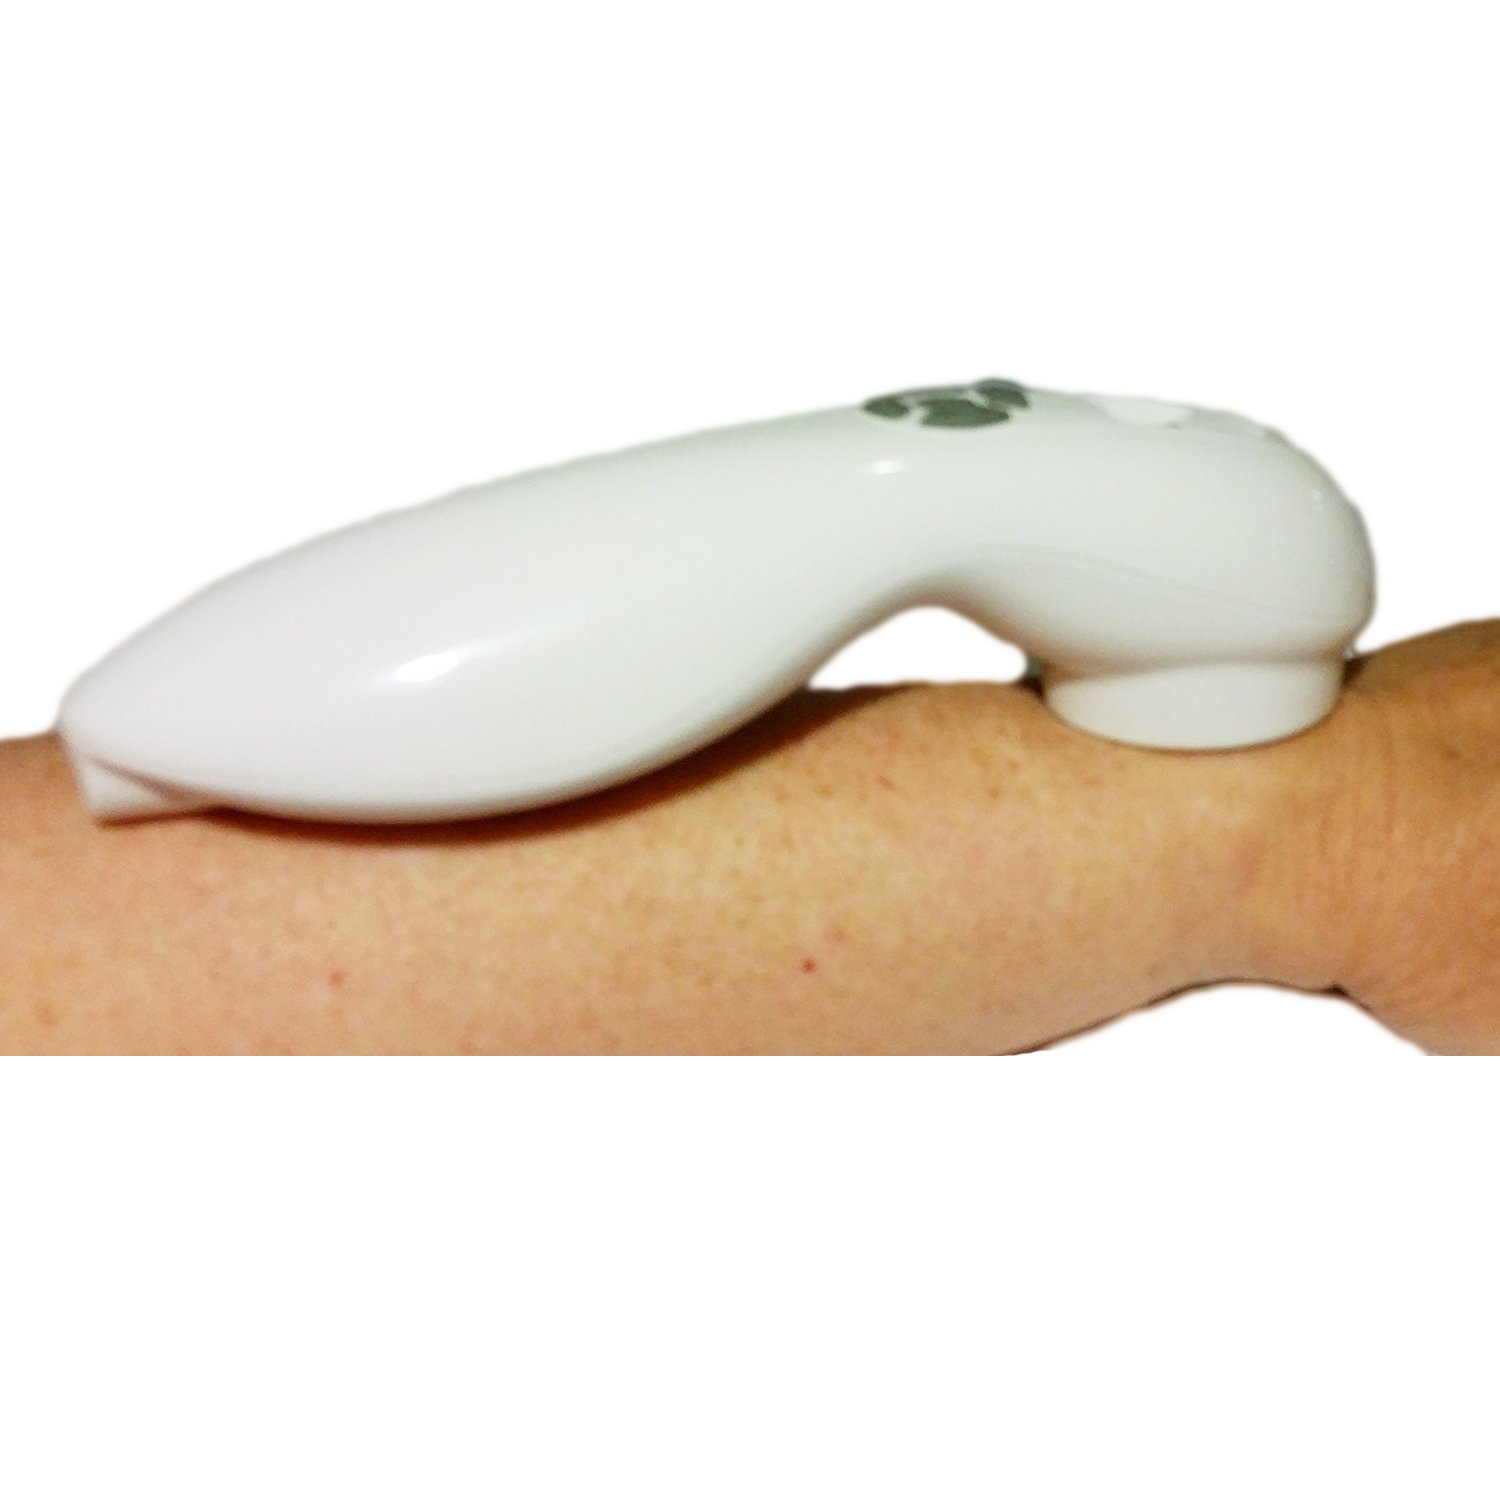 Pain Relief Cold Laser Therapy Unit + 2 FREE Gifts + FREE FedEx Shipping by YJTSKY (Image #6)